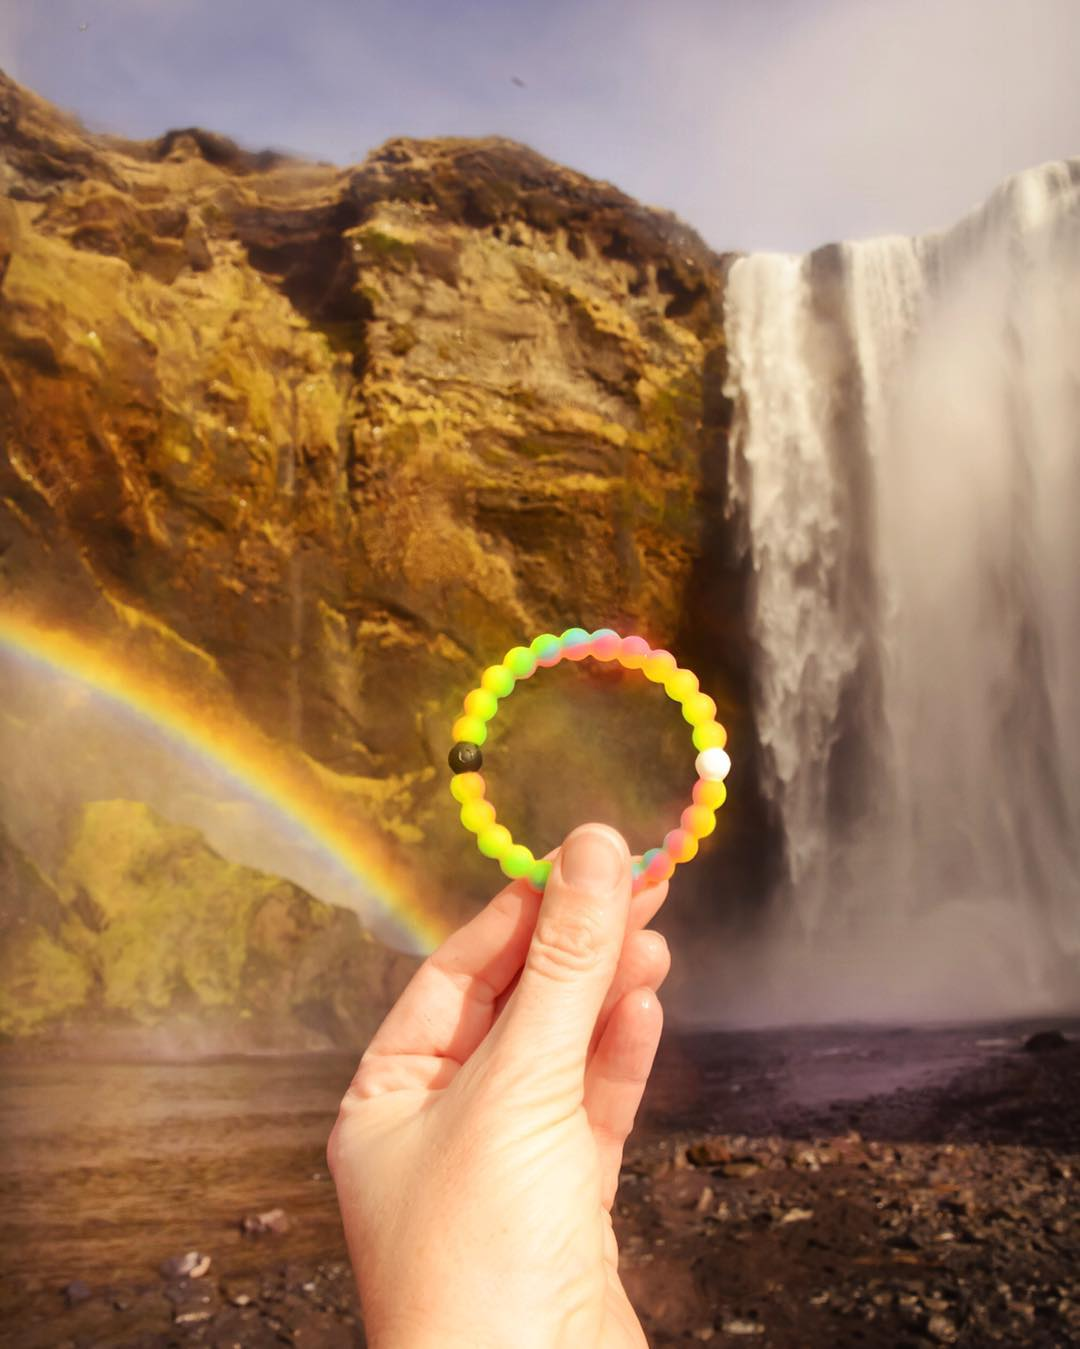 Where Mother Nature pulls out all the stops #MothersDay #livelokai